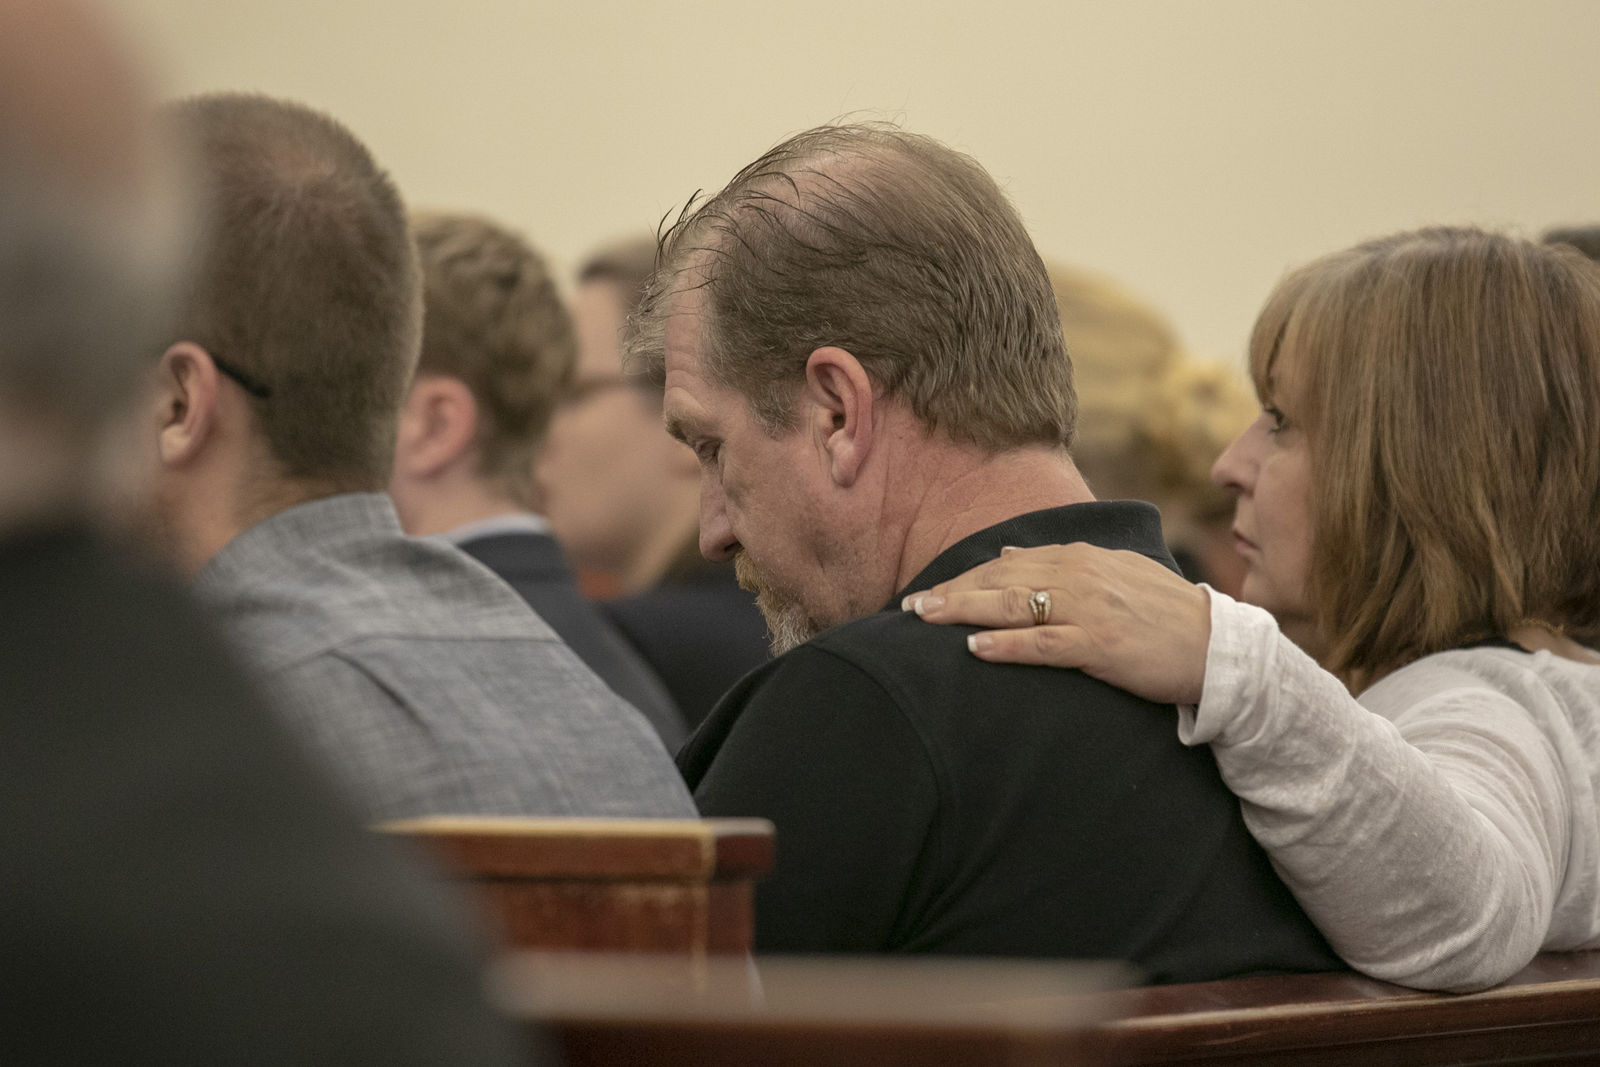 Tim Jones Sr., and his wife, Julie Jones listen as 11th Circuit Solicitor Rick Hubbard delivers closing arguments, pushing for the death penalty, during the sentencing phase of the trial of Timothy Jones Jr. in Lexington, S.C. on Thursday, June 13, 2019.  Jones, Jr. was found guilty of killing his five young children in 2014. (Tracy Glantz/The State via AP, Pool)